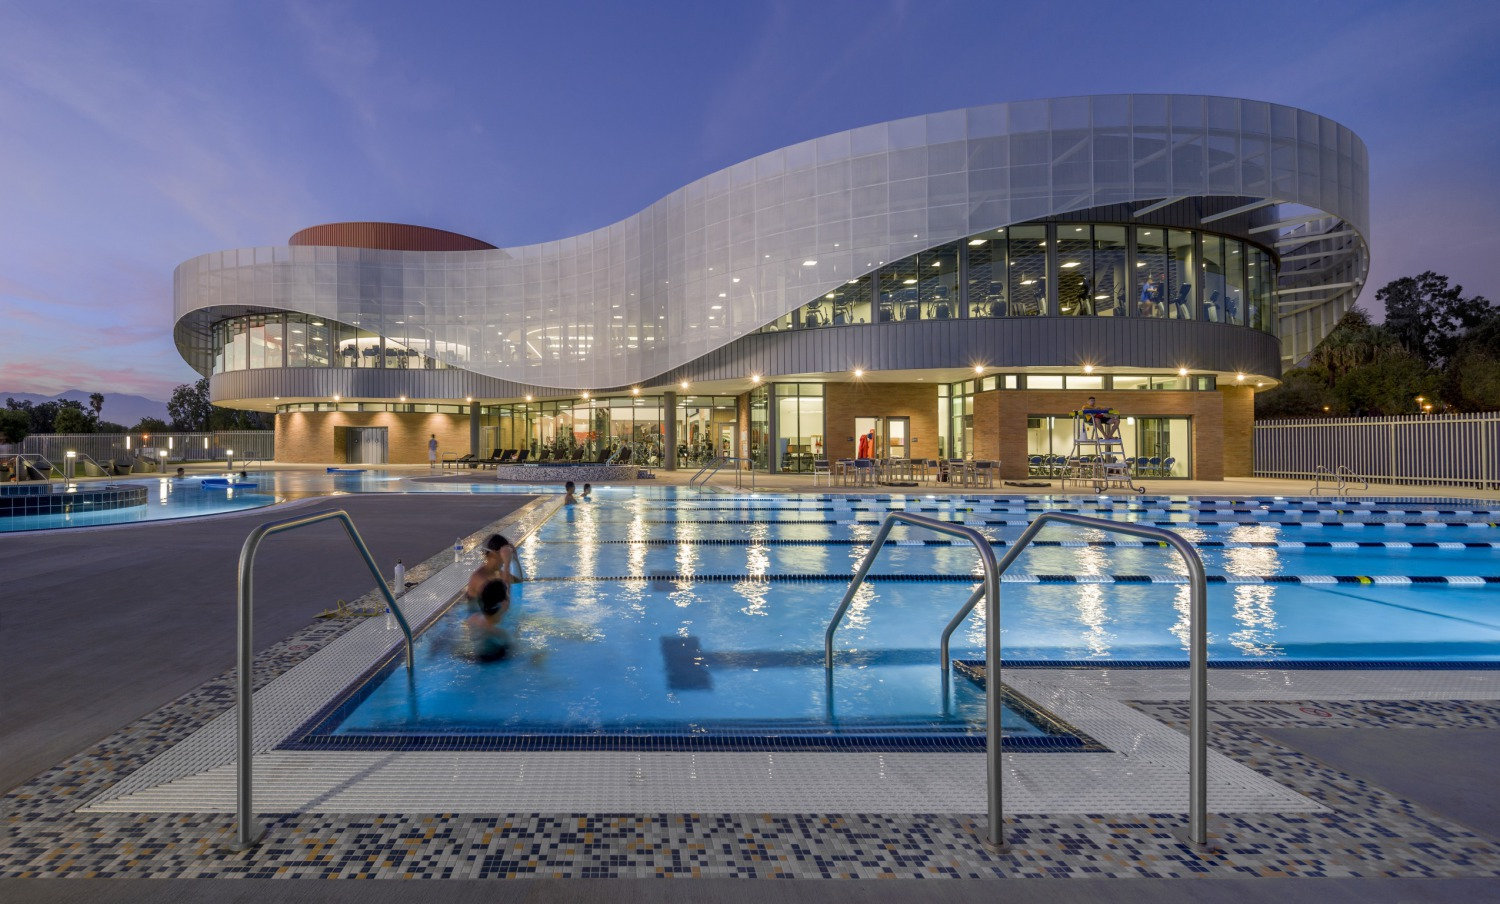 University Of California Riverside Recreation Center